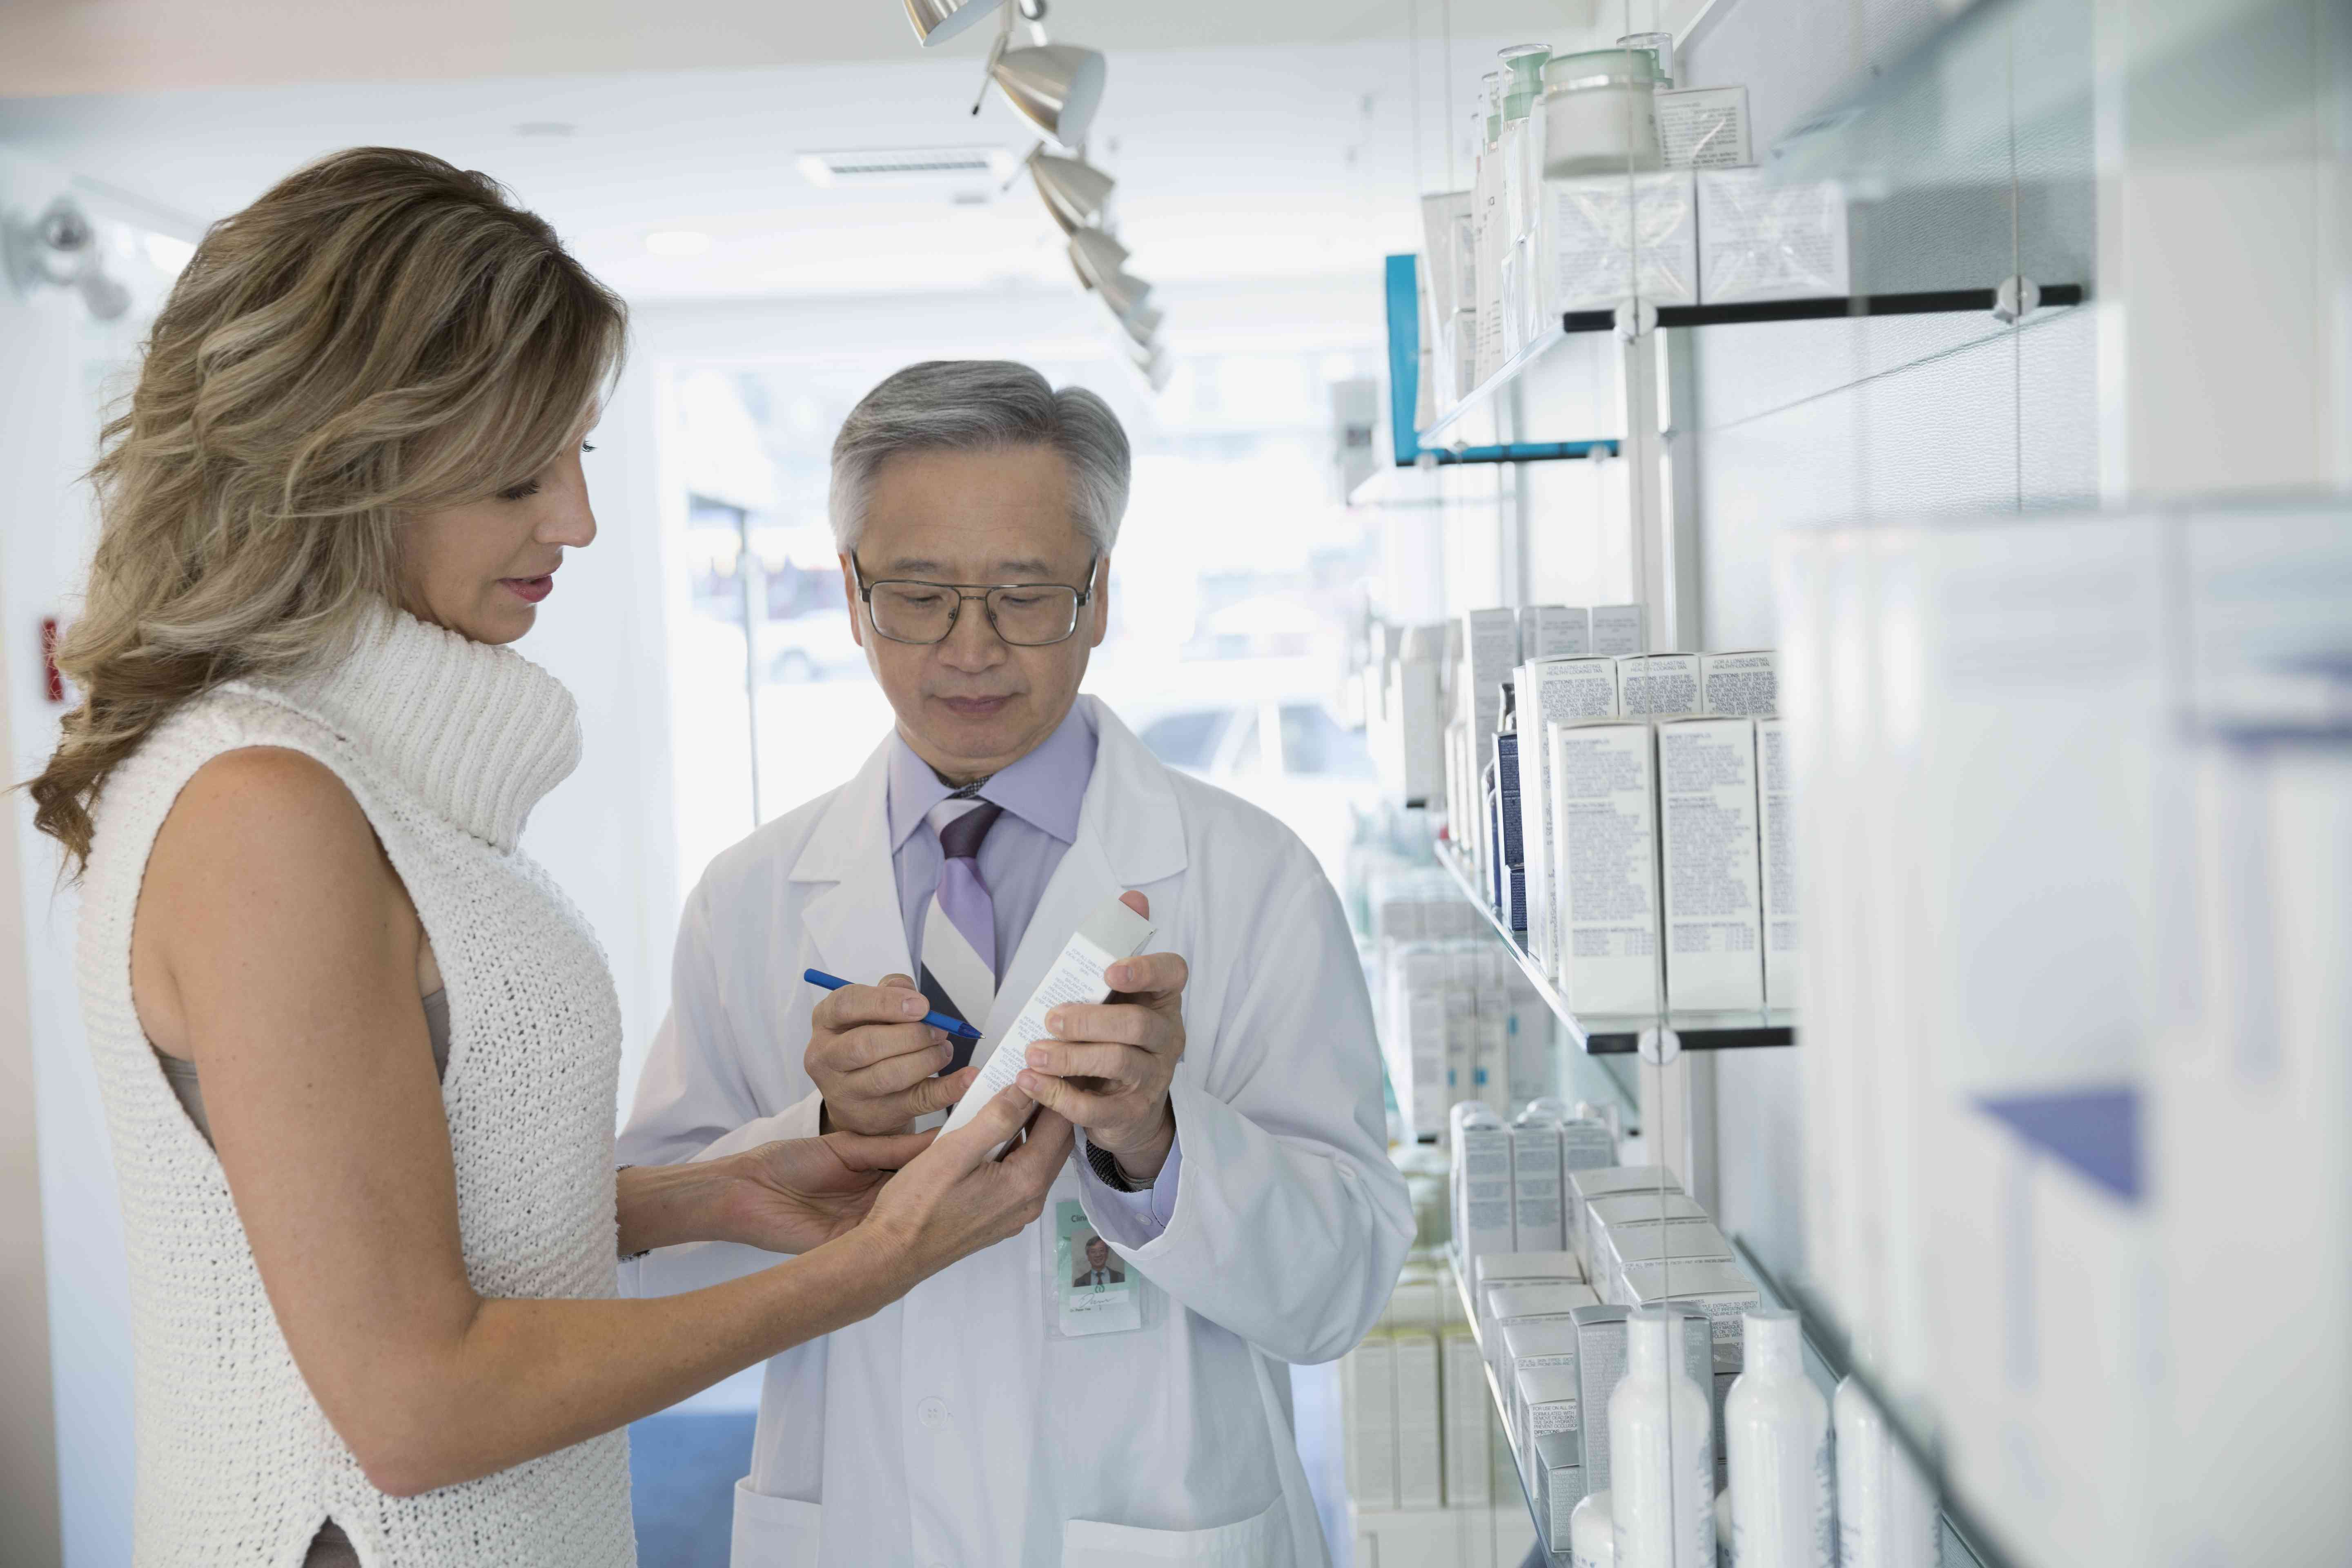 Dermatologist and patient choosing a skin care product